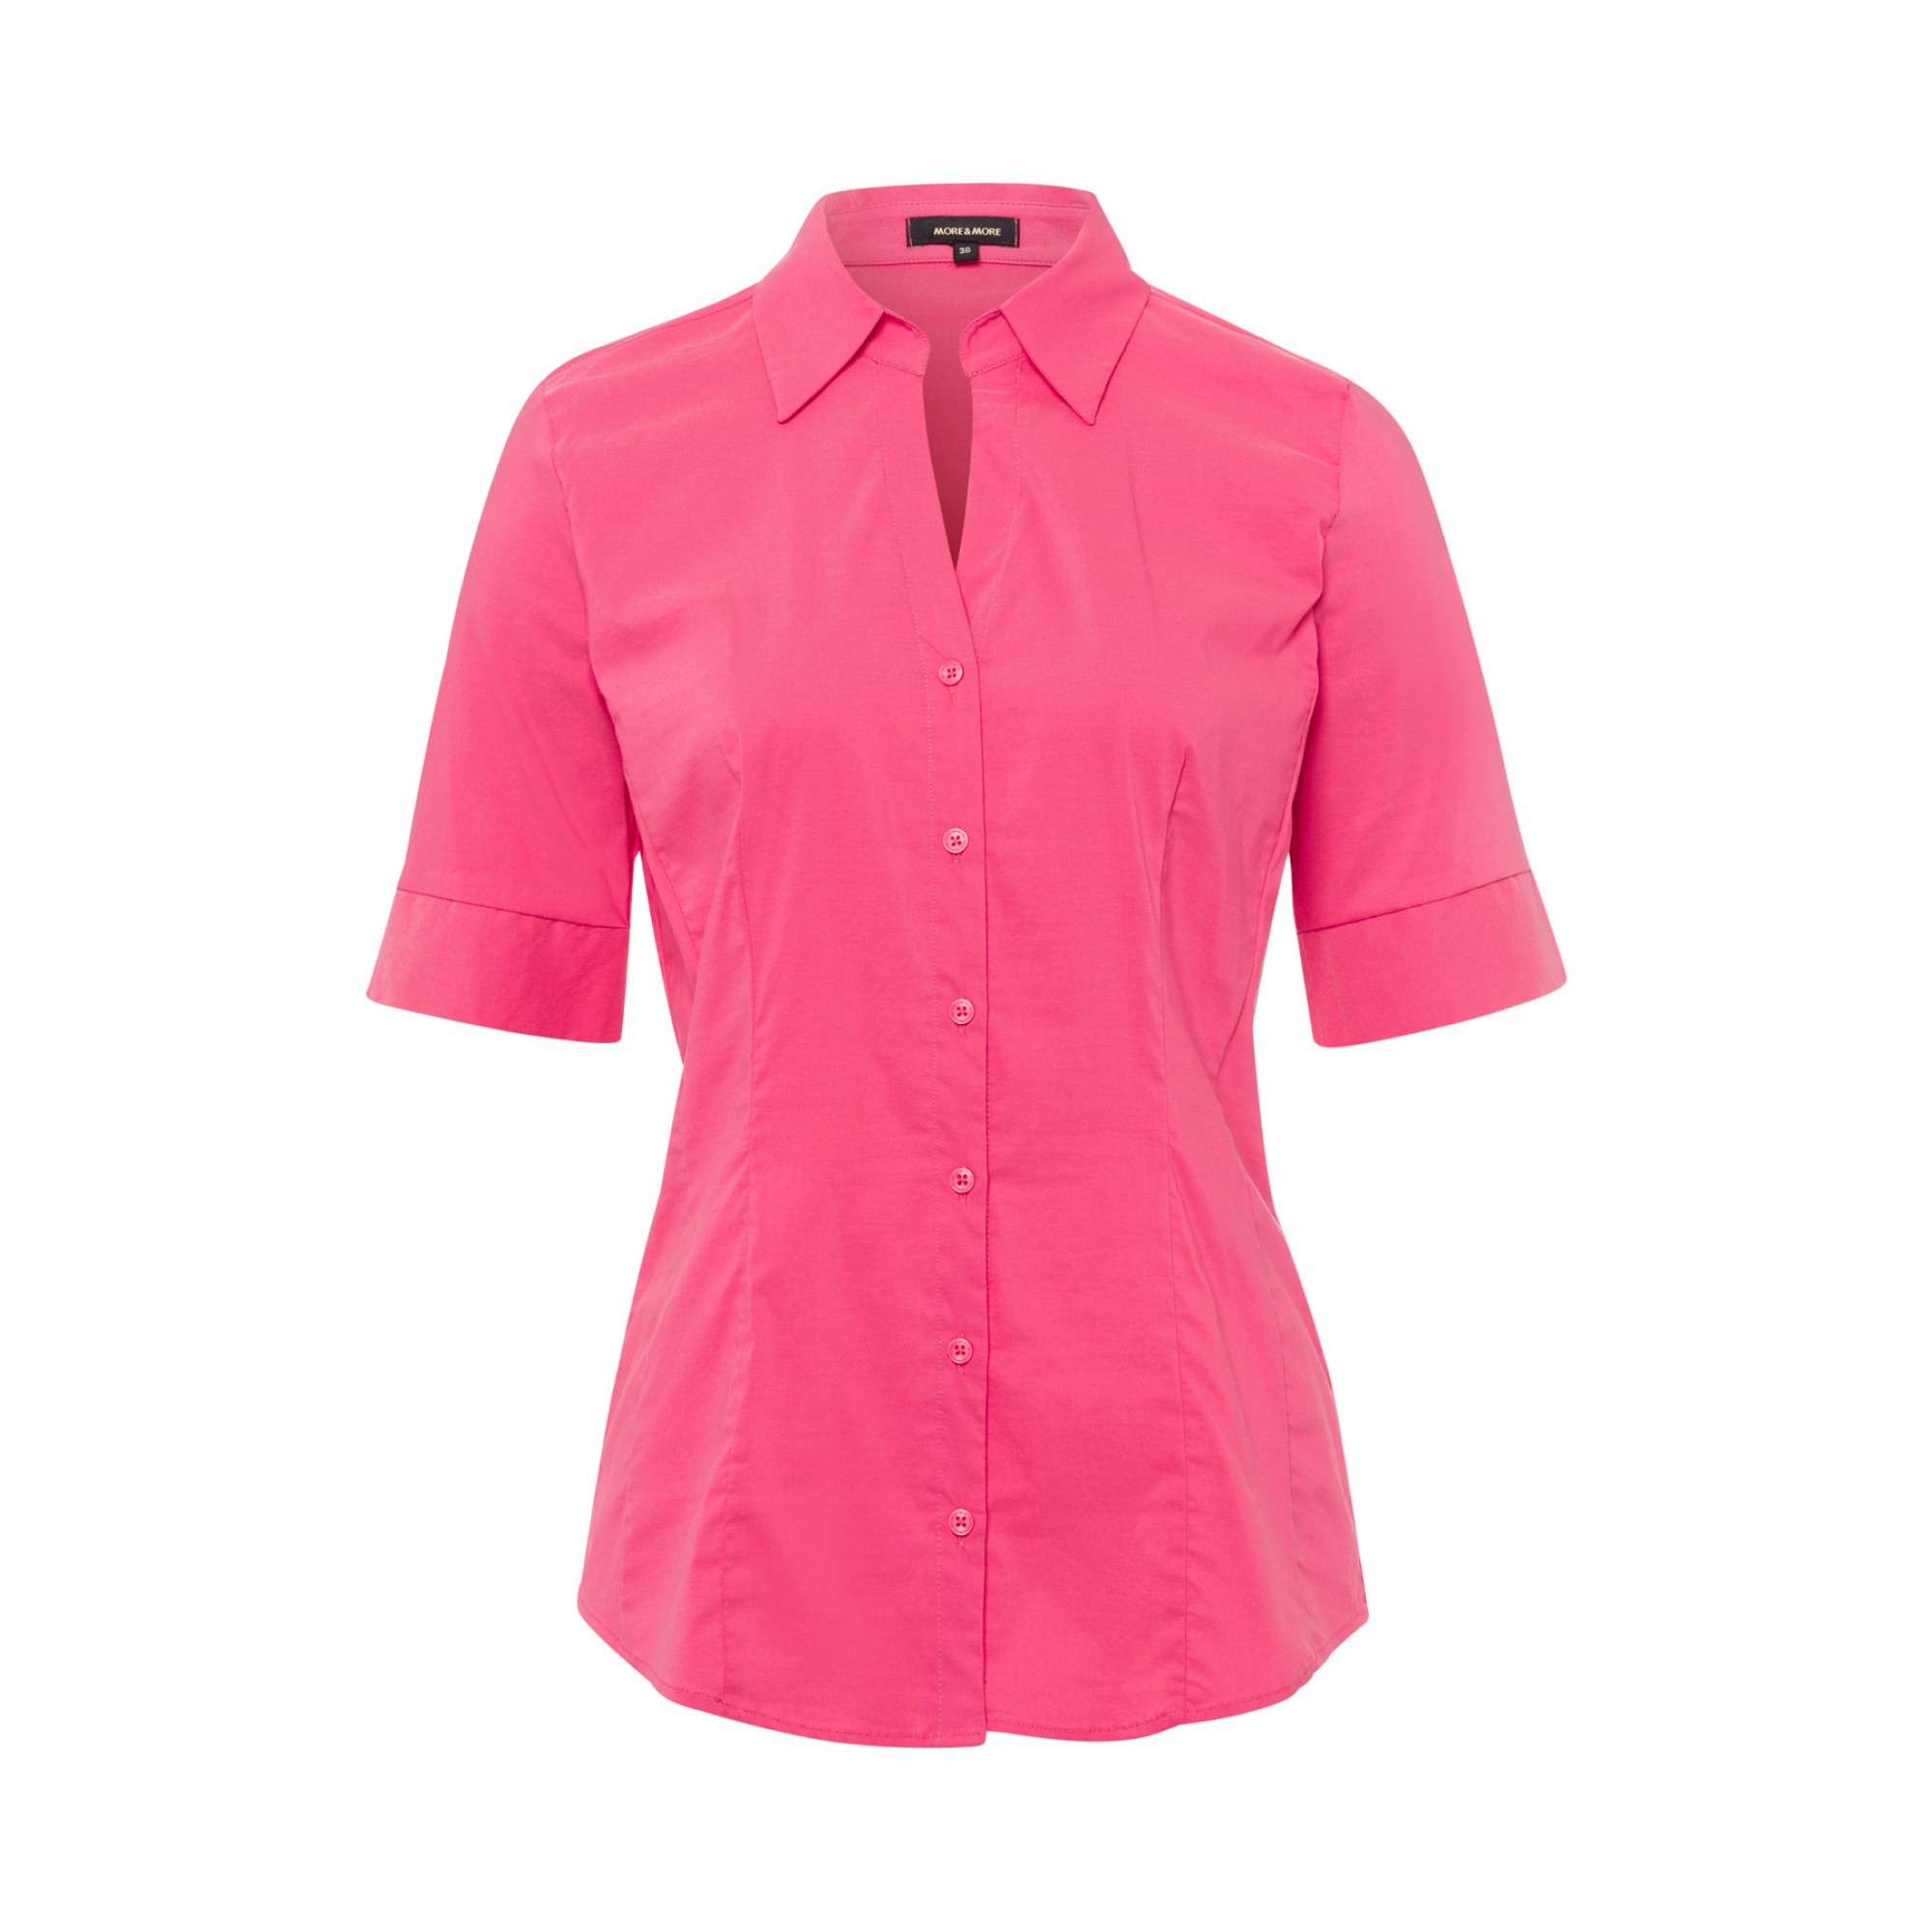 Baumwoll/Stretch Bluse, pink berry 11042566-0831 1